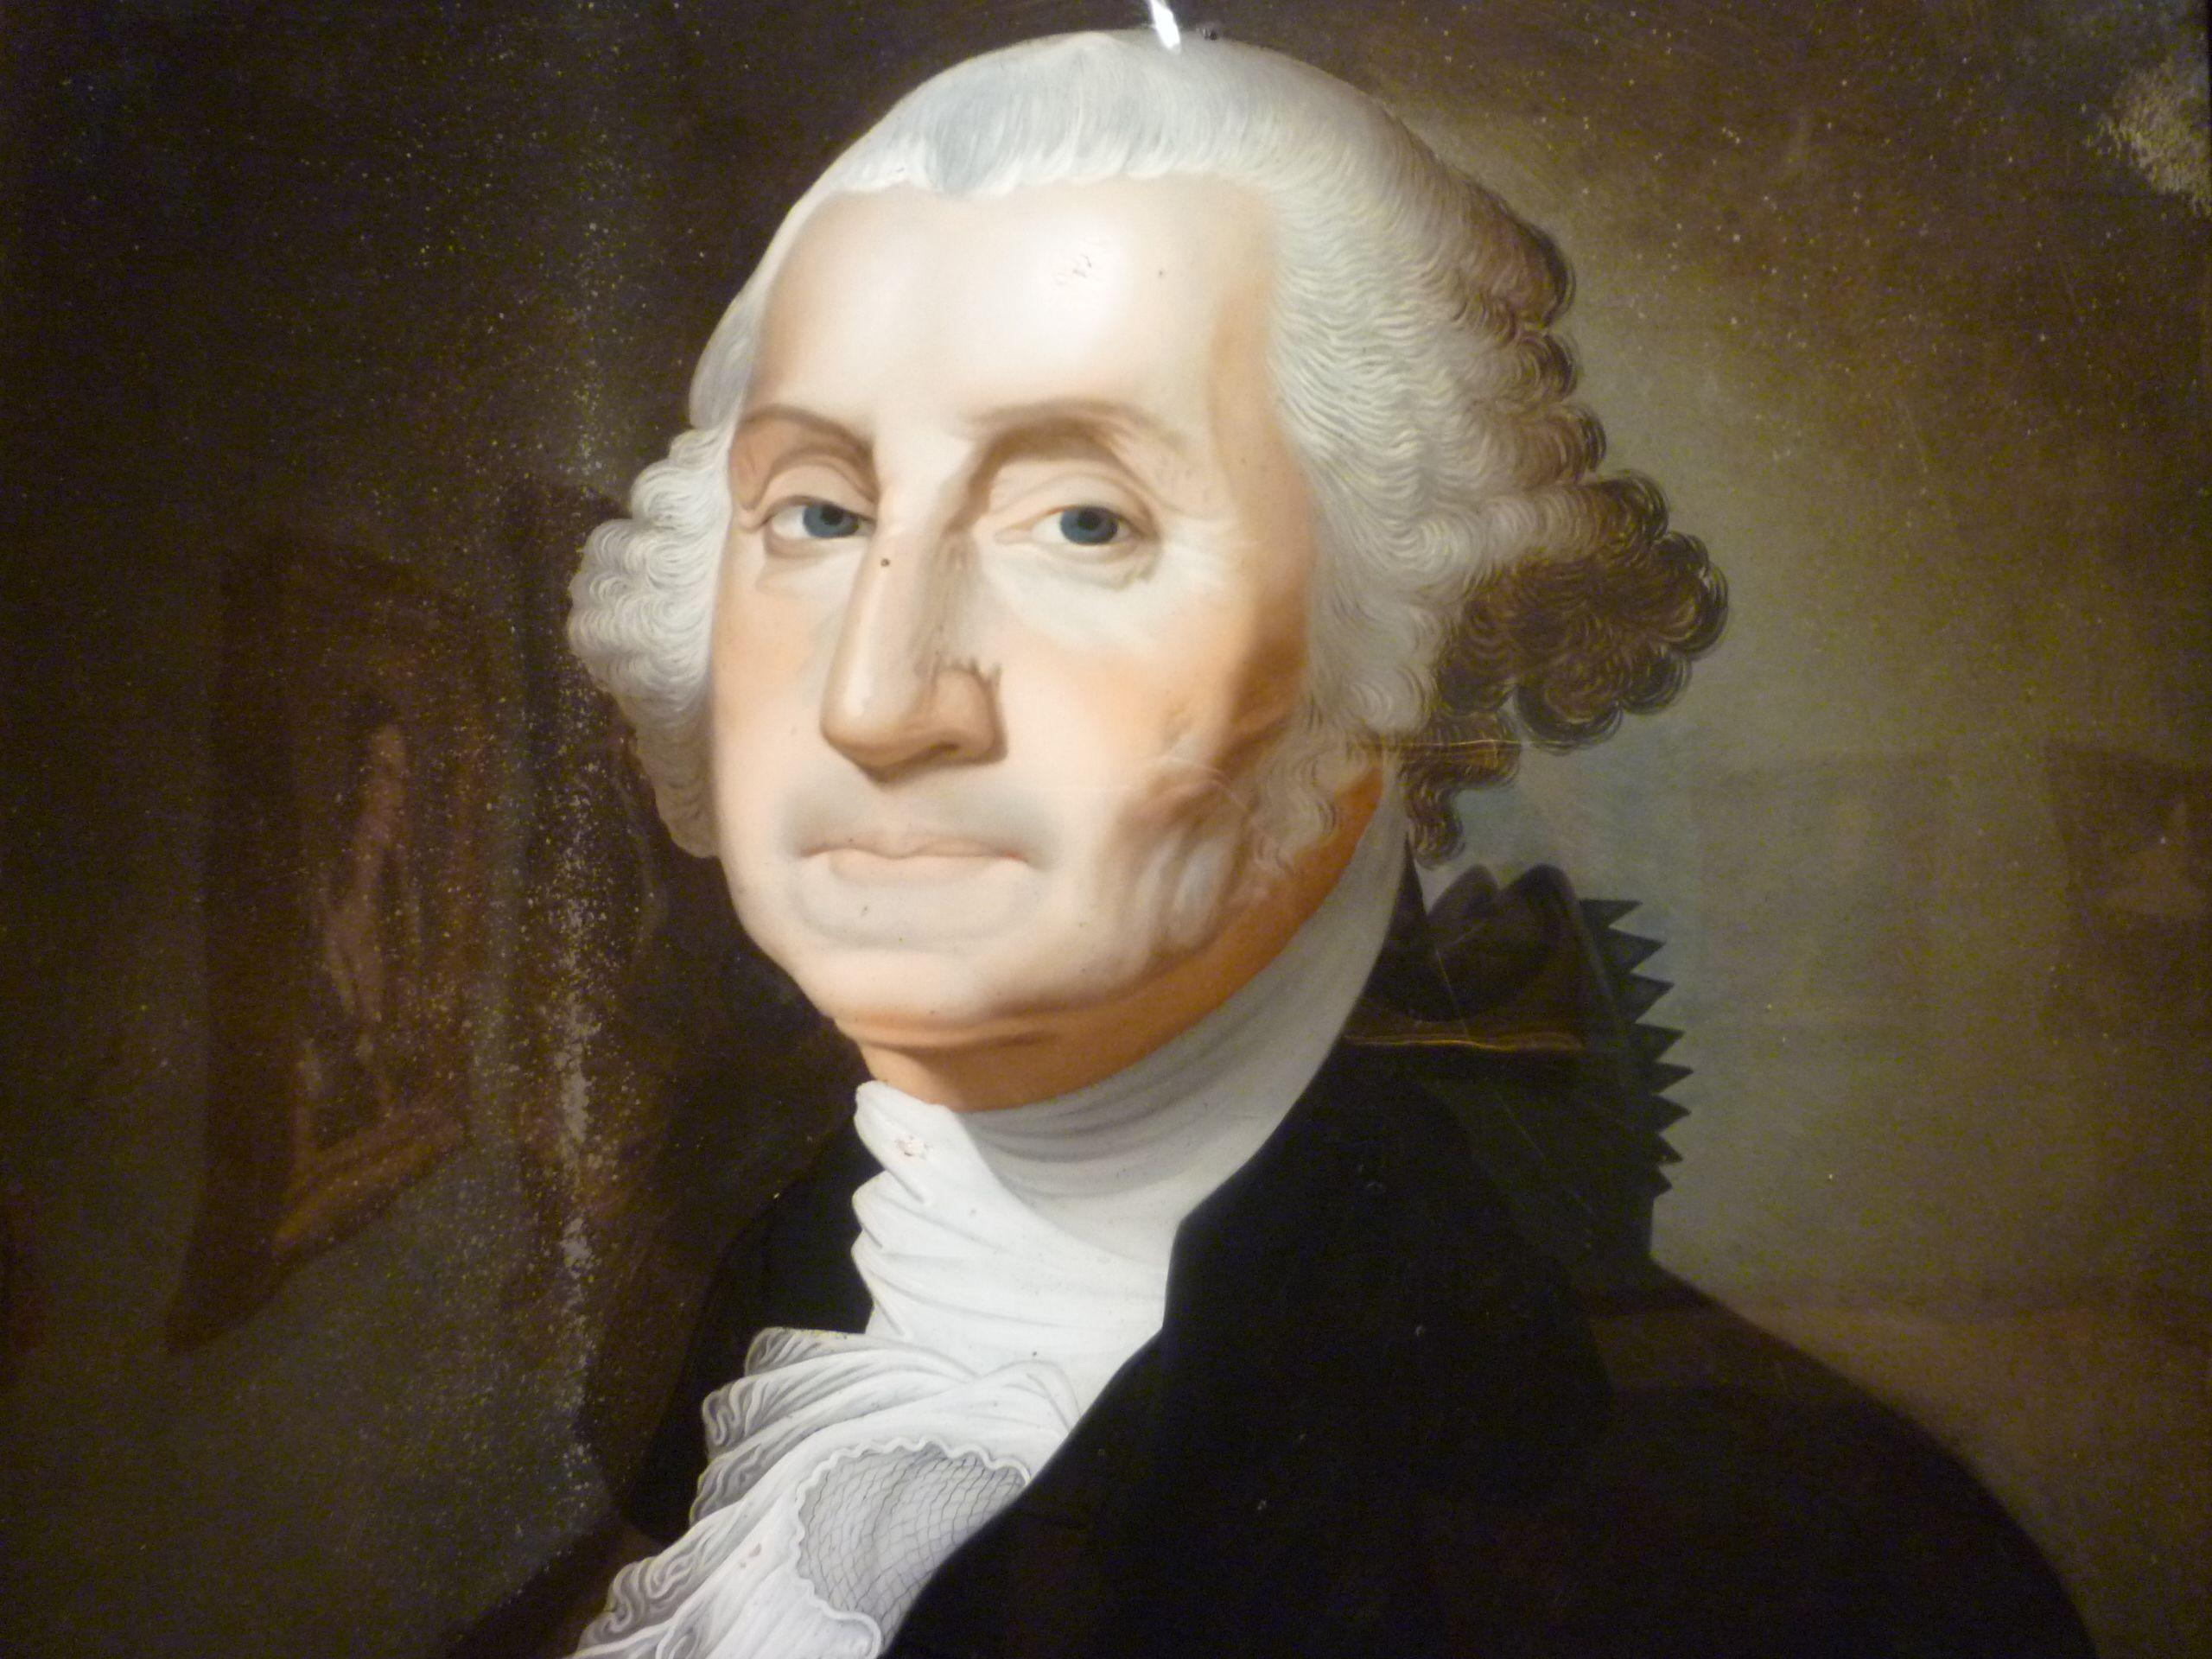 George Washington wallpaper | 2560x1920 | #62605